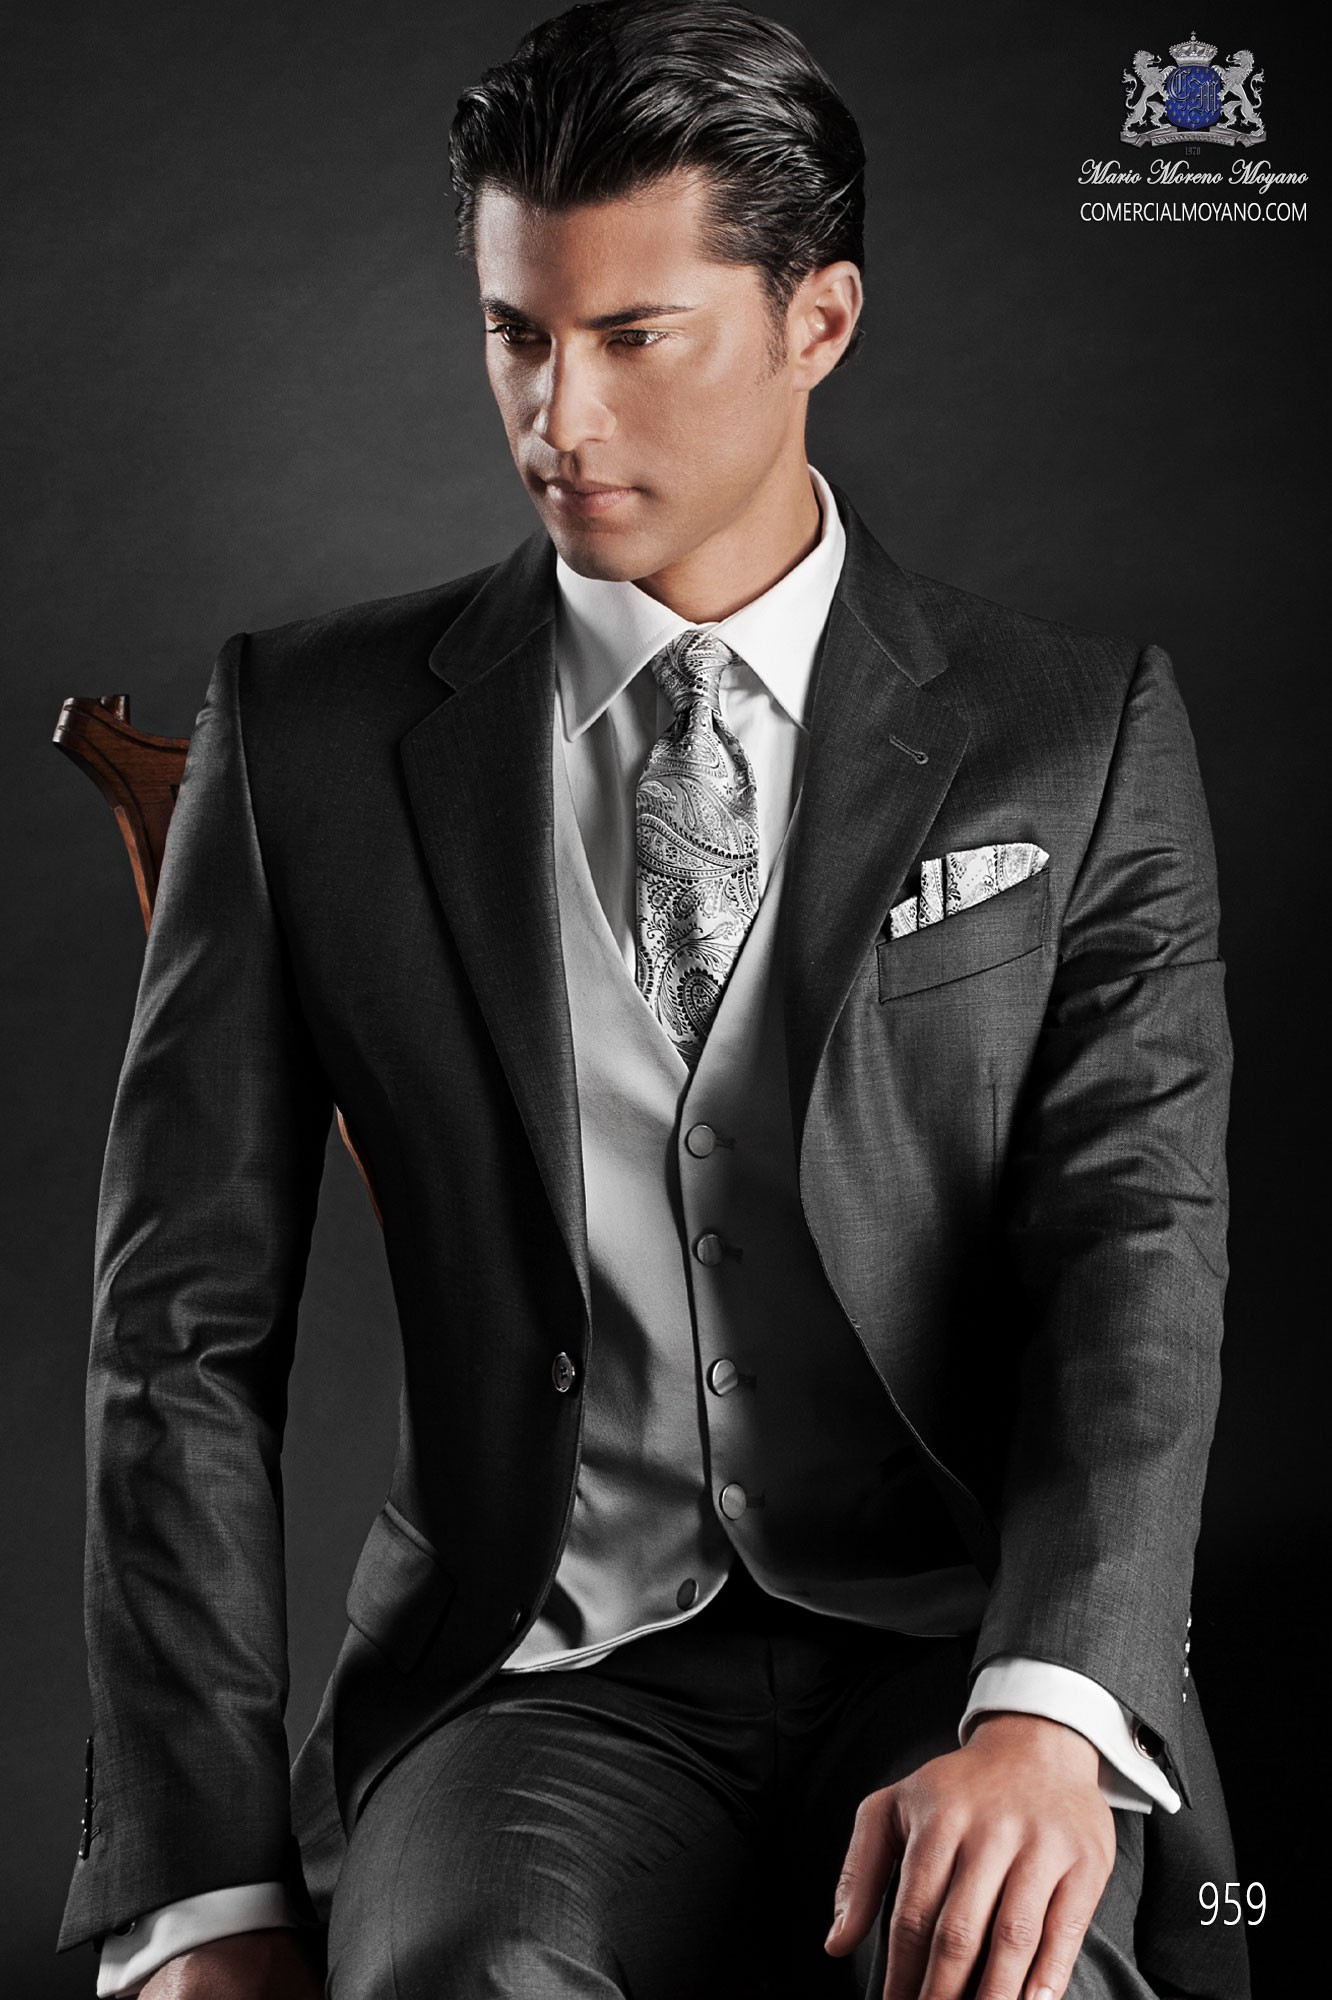 Gentleman gray men wedding suit model 959 Ottavio Nuccio Gala